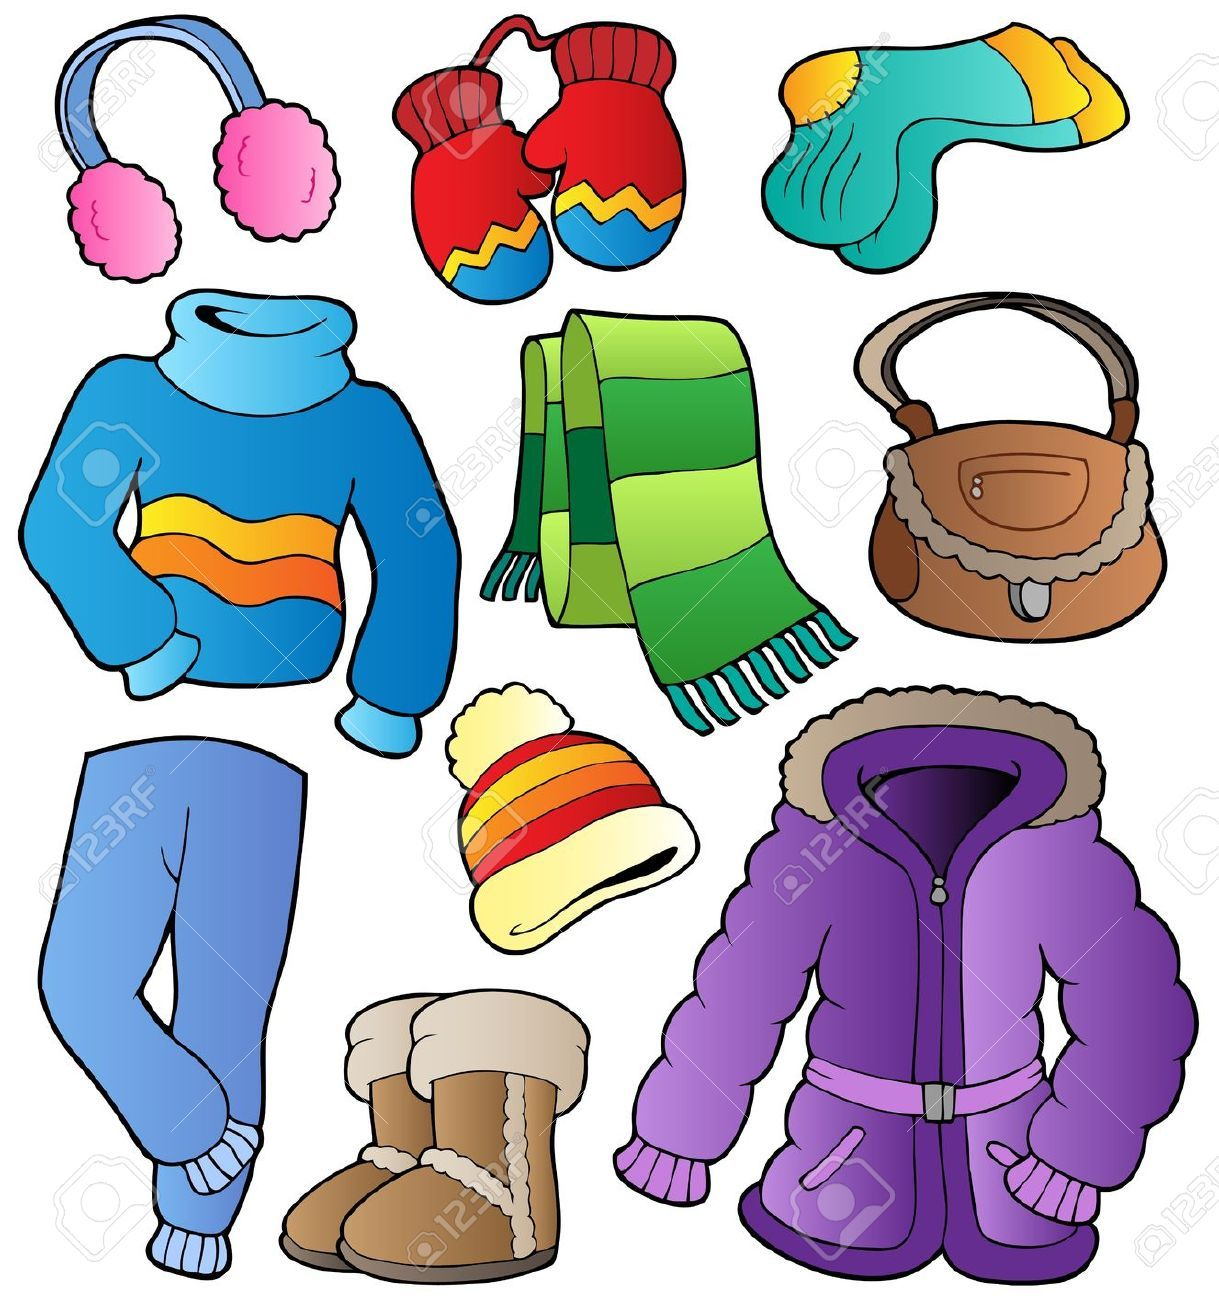 children in winter clothes coloring pages - Hľadať Googlom ...